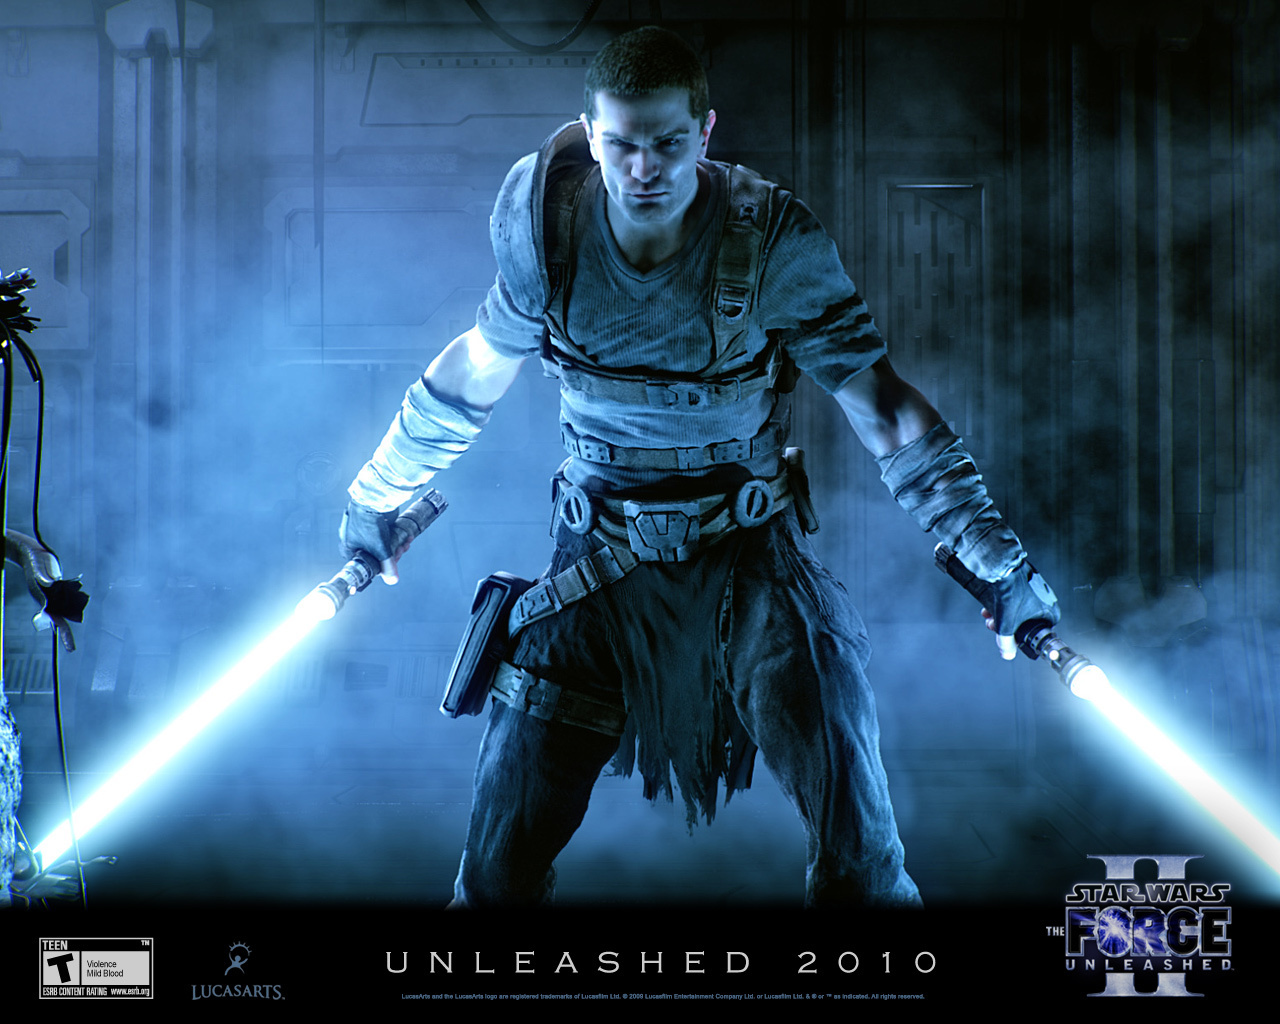 star wars force unleashed 2 character customization. Black Bedroom Furniture Sets. Home Design Ideas